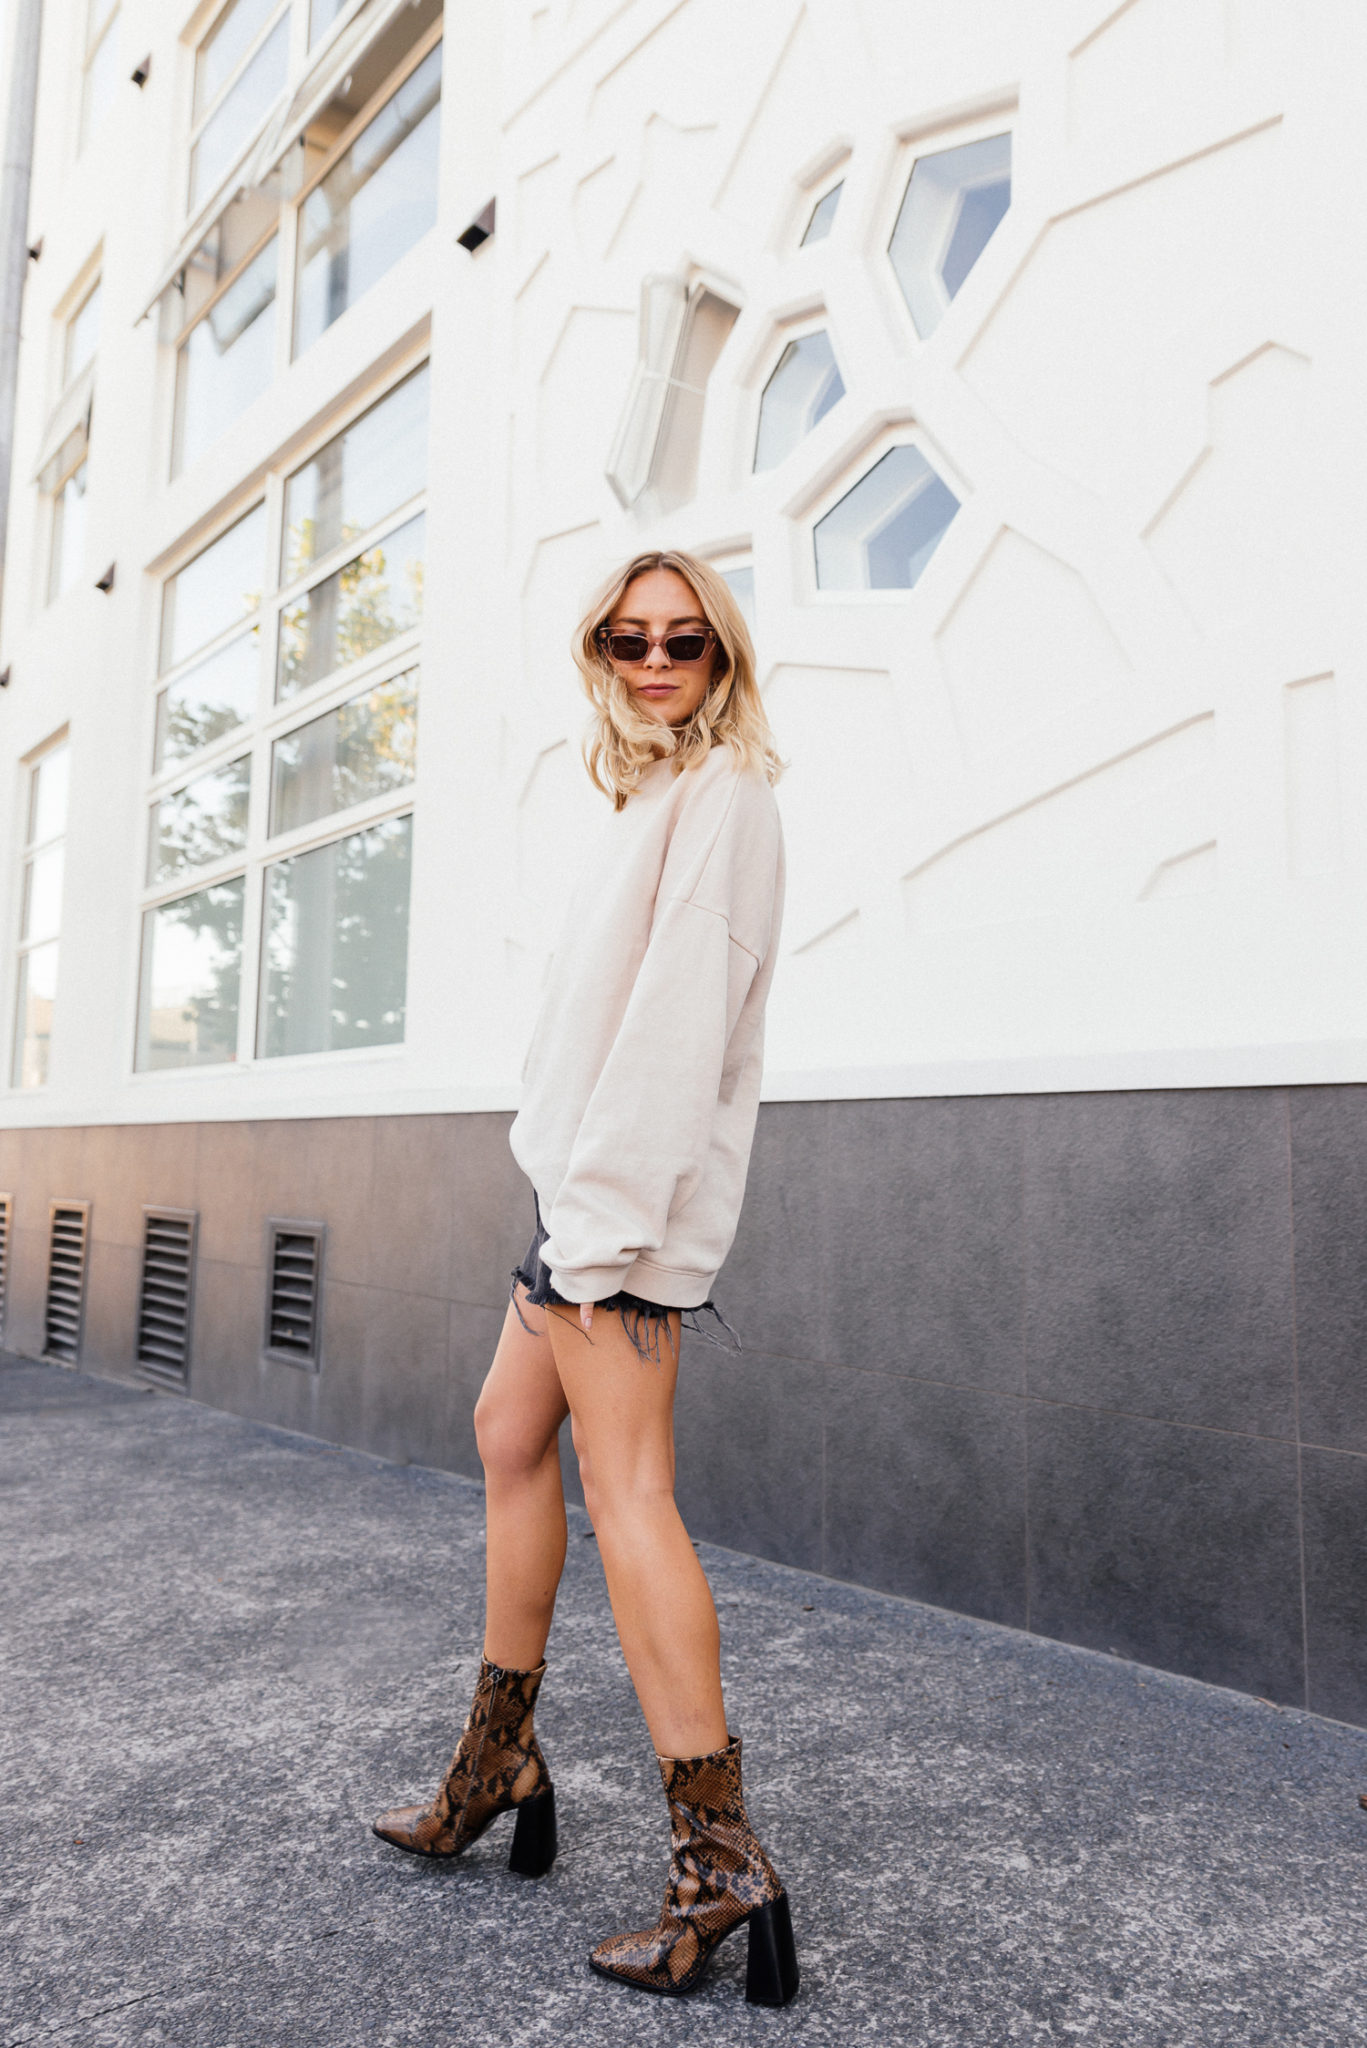 Hurricane Topshop Boots Snakeskin, BDG Denim Skirt, Pared Sunglasses | Stoleninspiration.com | NZ Fashion & Lifestyle Blogger1